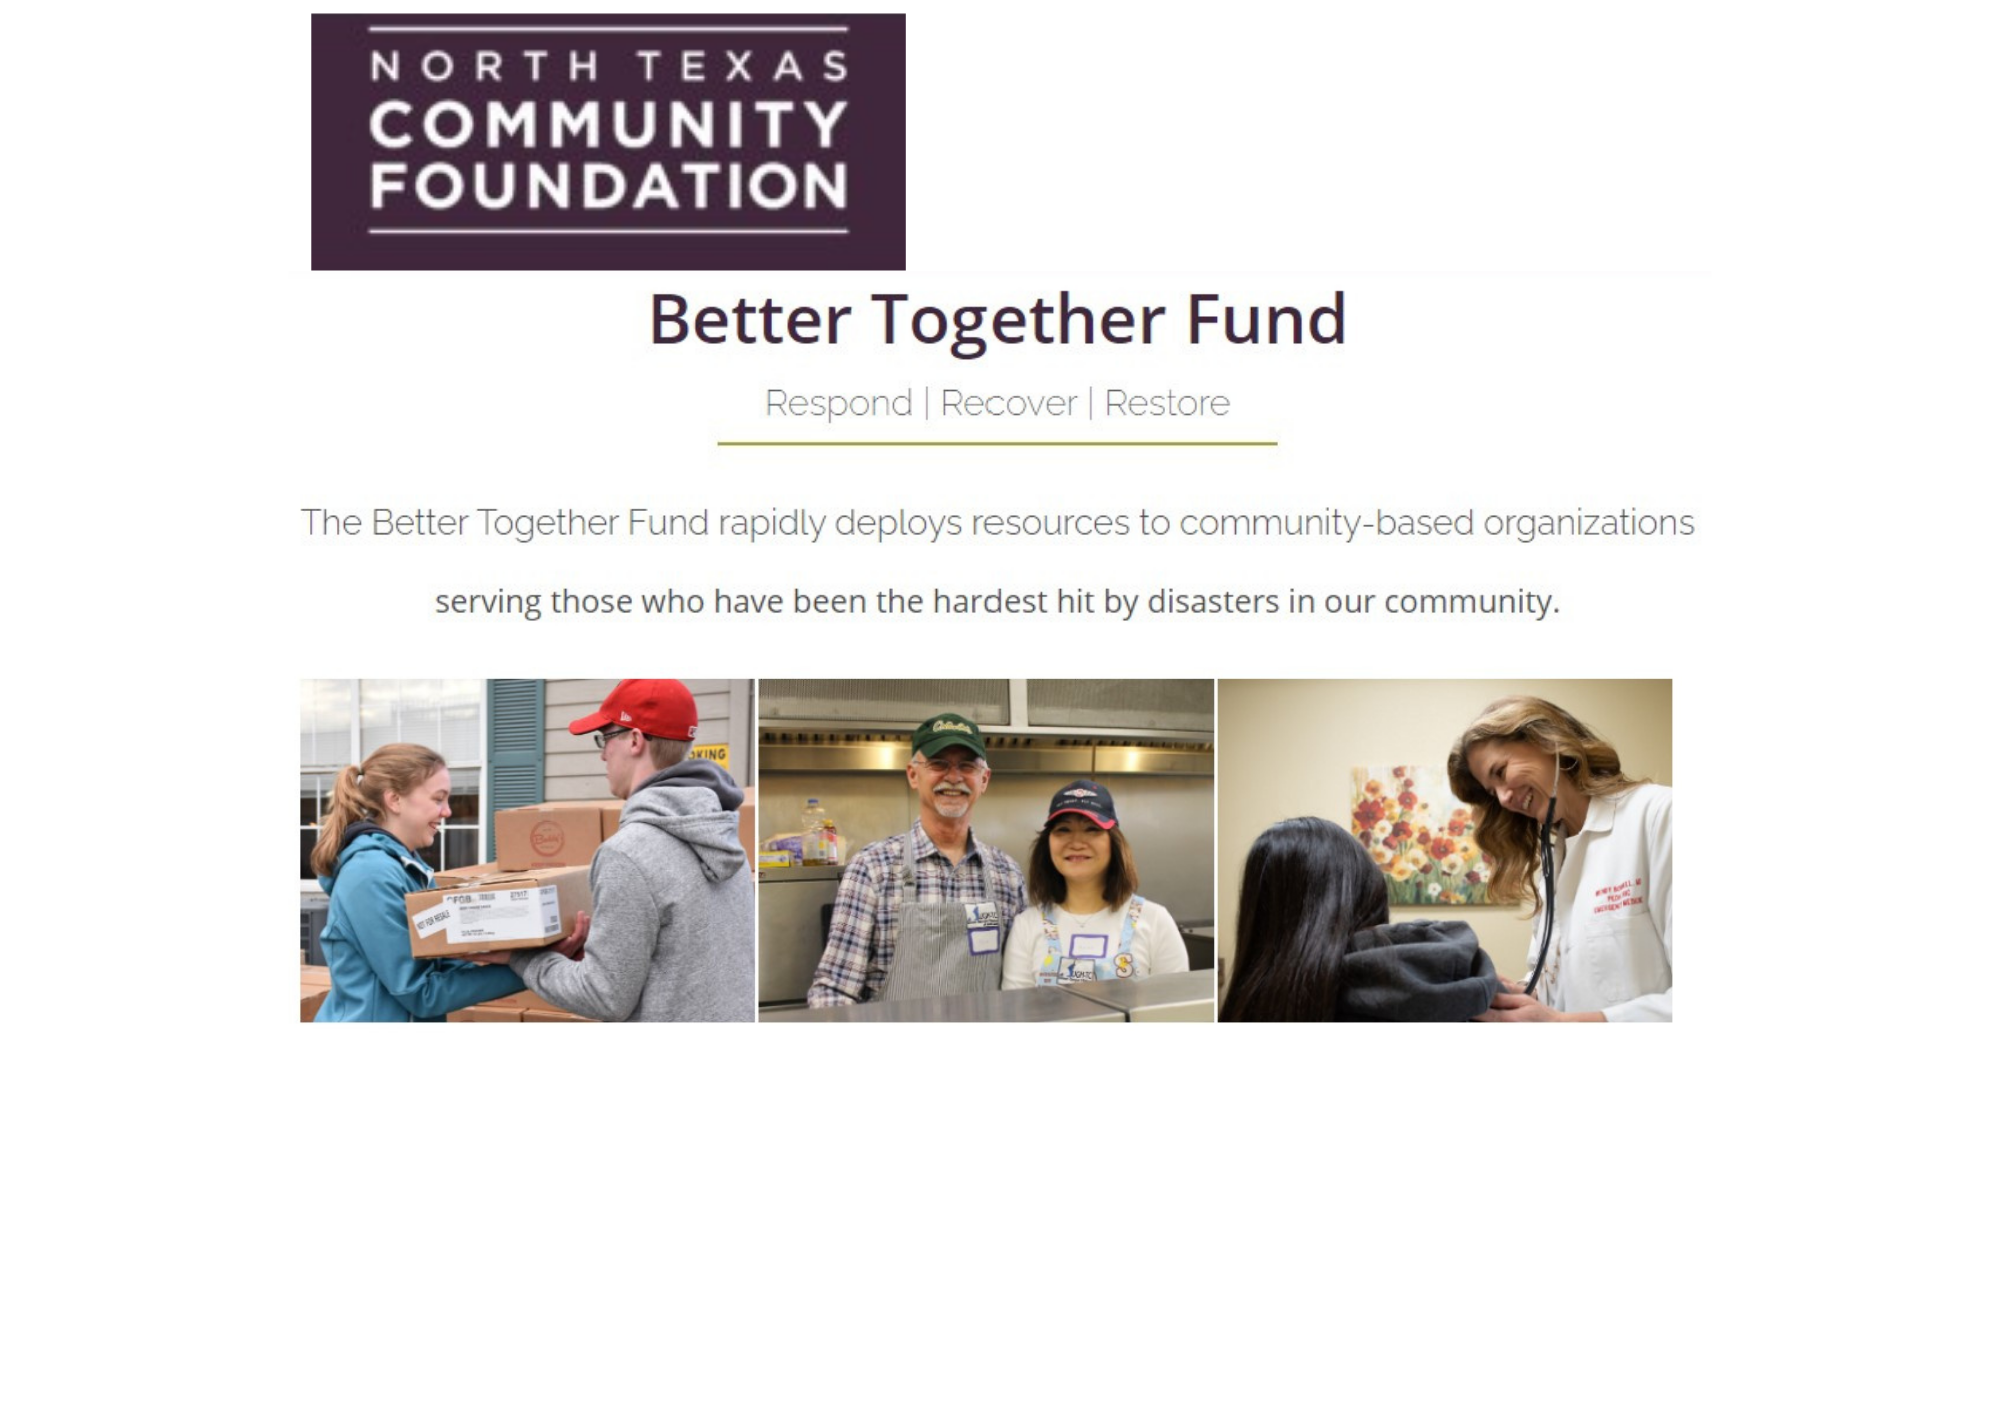 Better Together Fund at North Texas Community Foundation